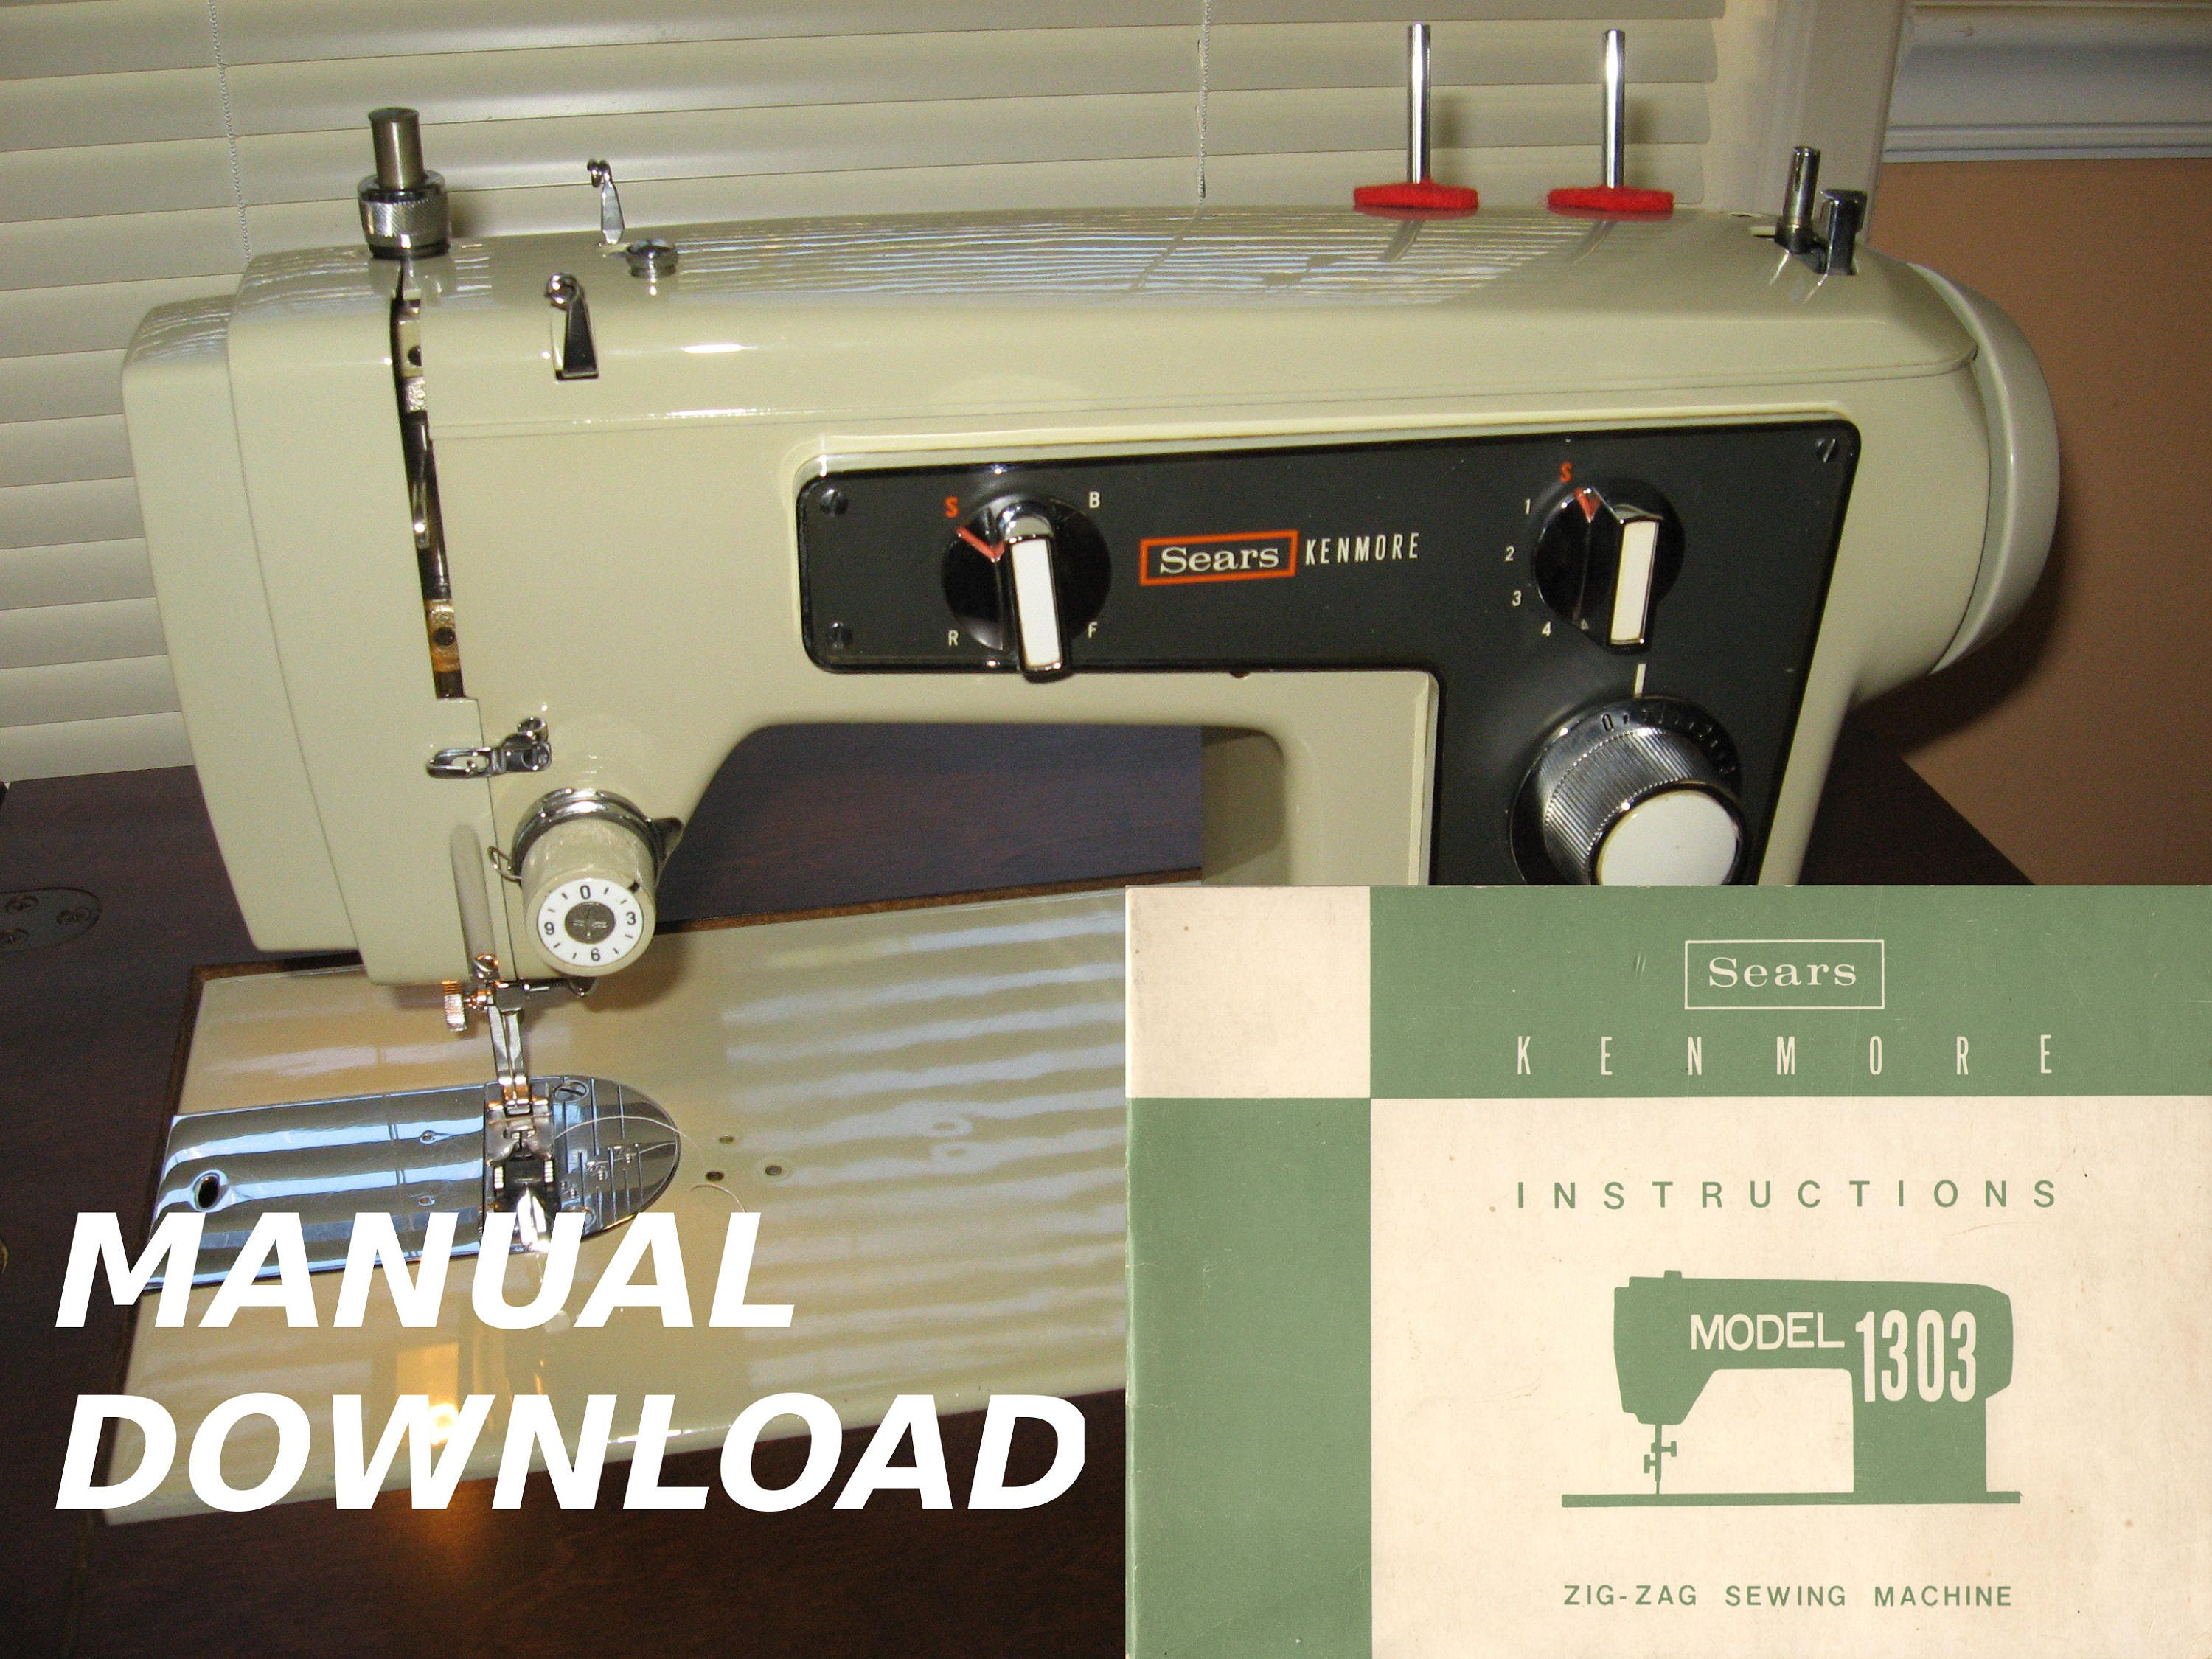 kenmore model 1320 instruction manual